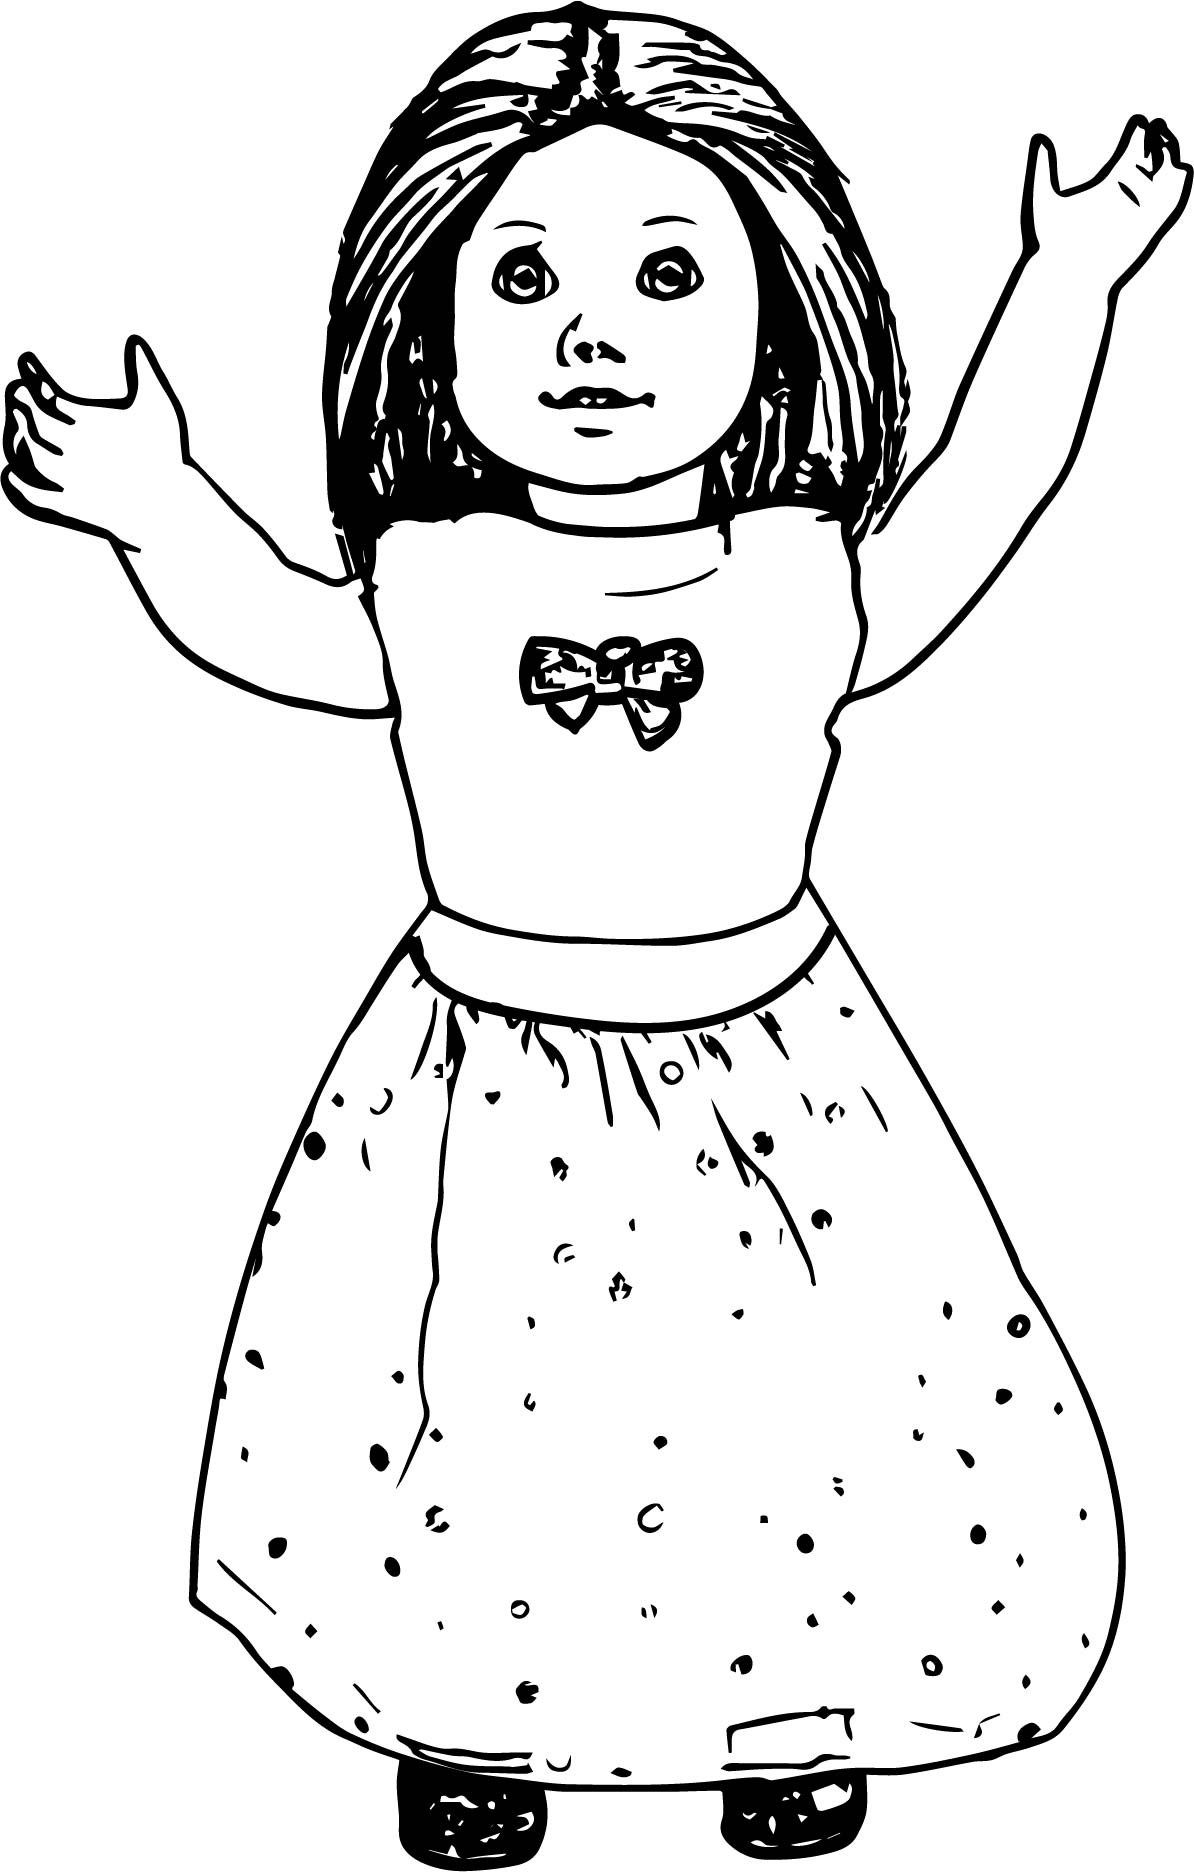 24 Creative Picture Of American Girl Doll Coloring Pages Davemelillo Com Coloring Pages For Girls American Girl Doll Printables Coloring Pages To Print